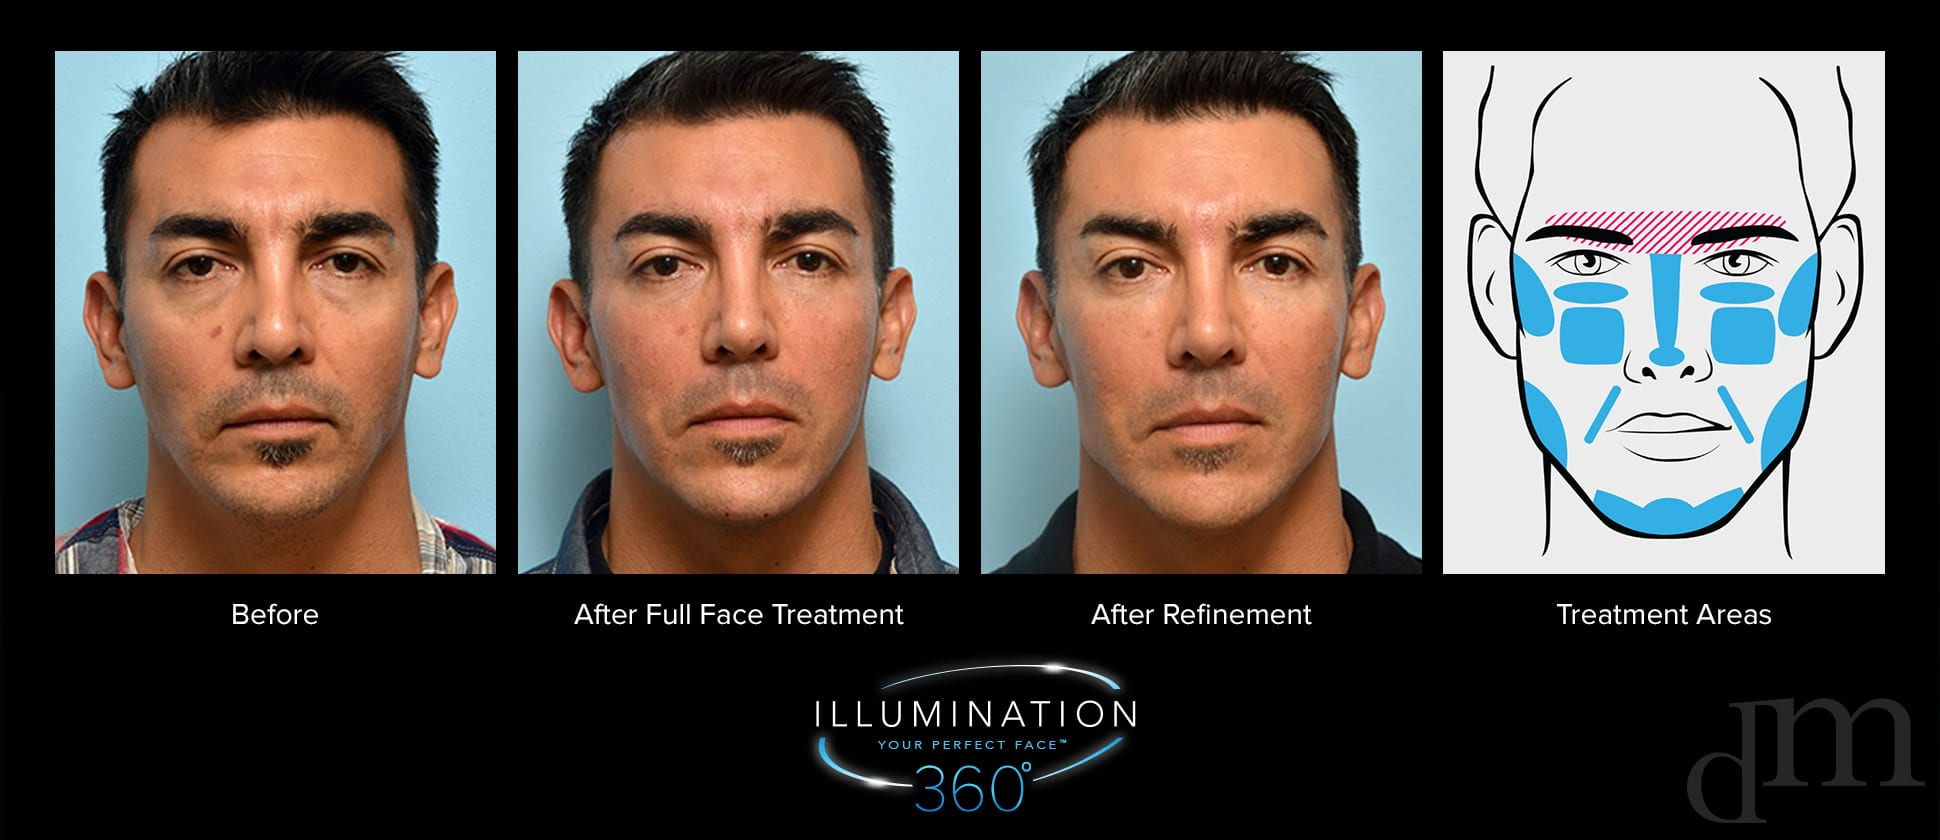 male before, after full face treatment, after refinement, treatment areas